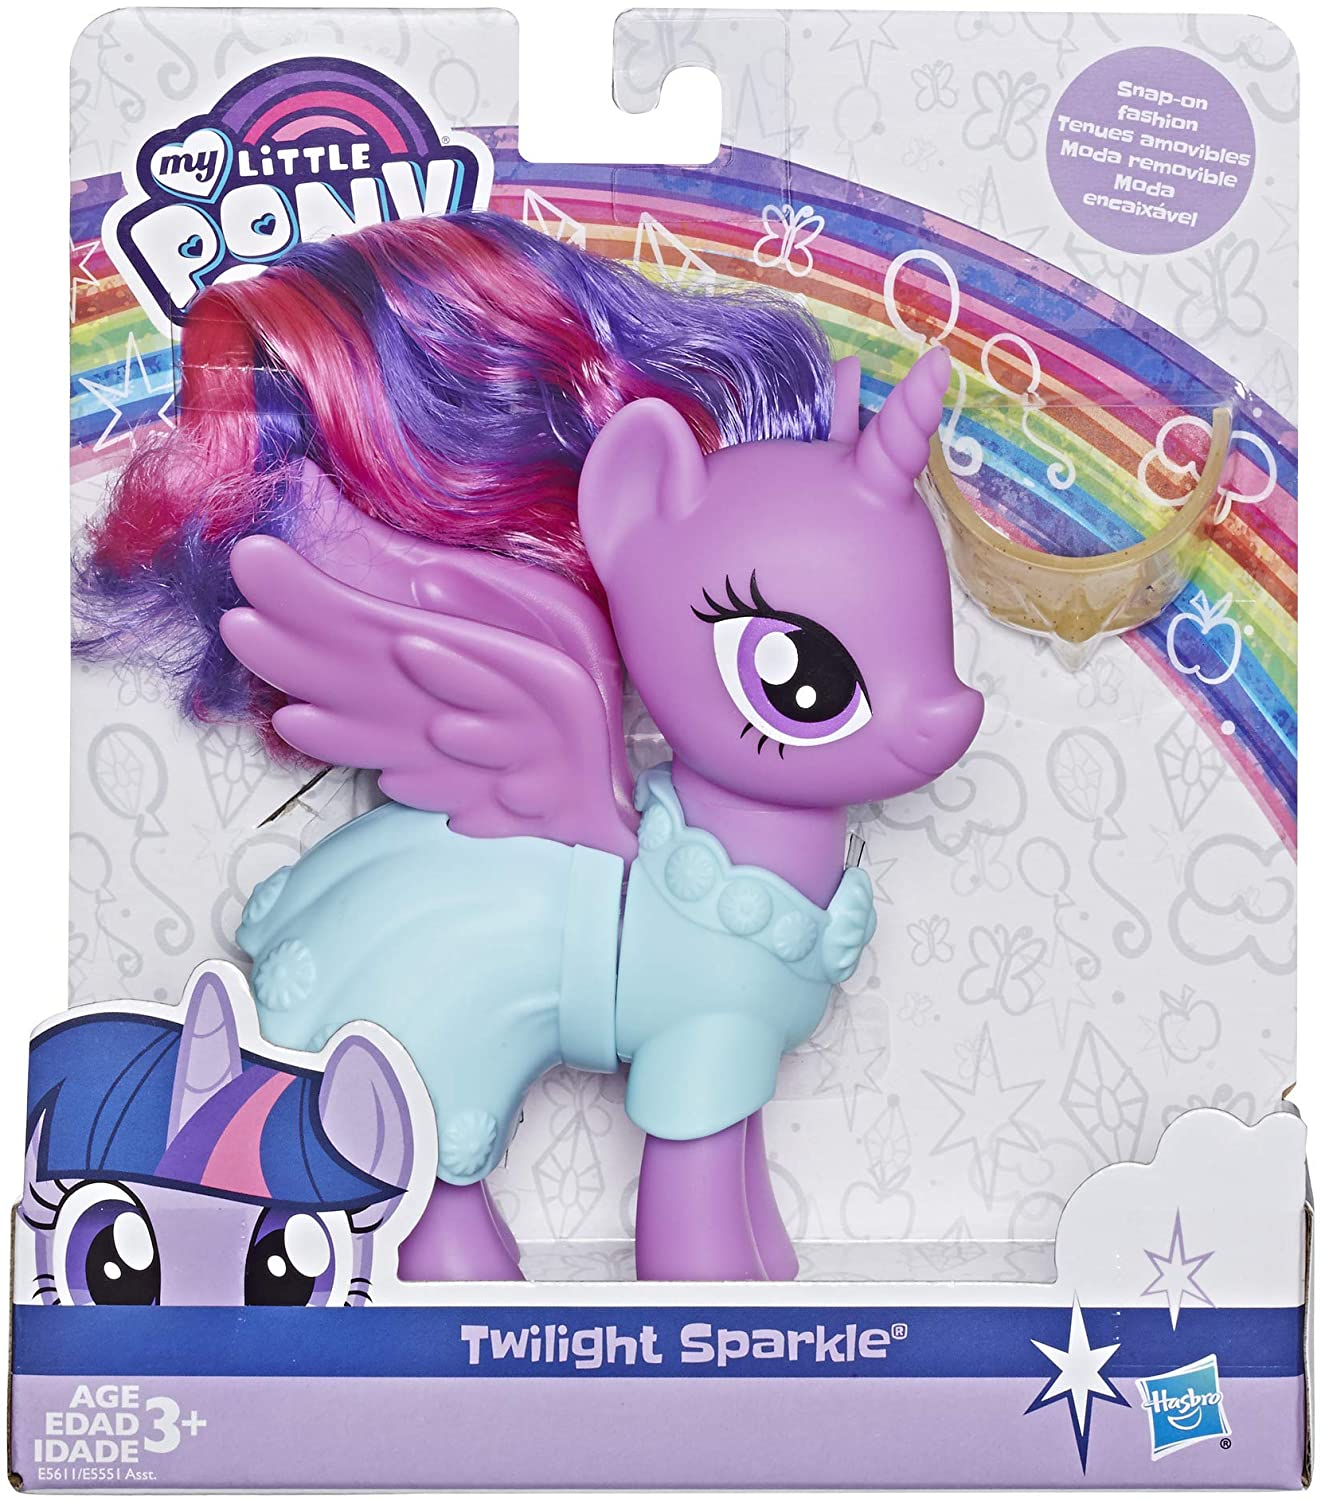 MLP Princess Twilight Sparkle Snap-on Fashion Figure 1